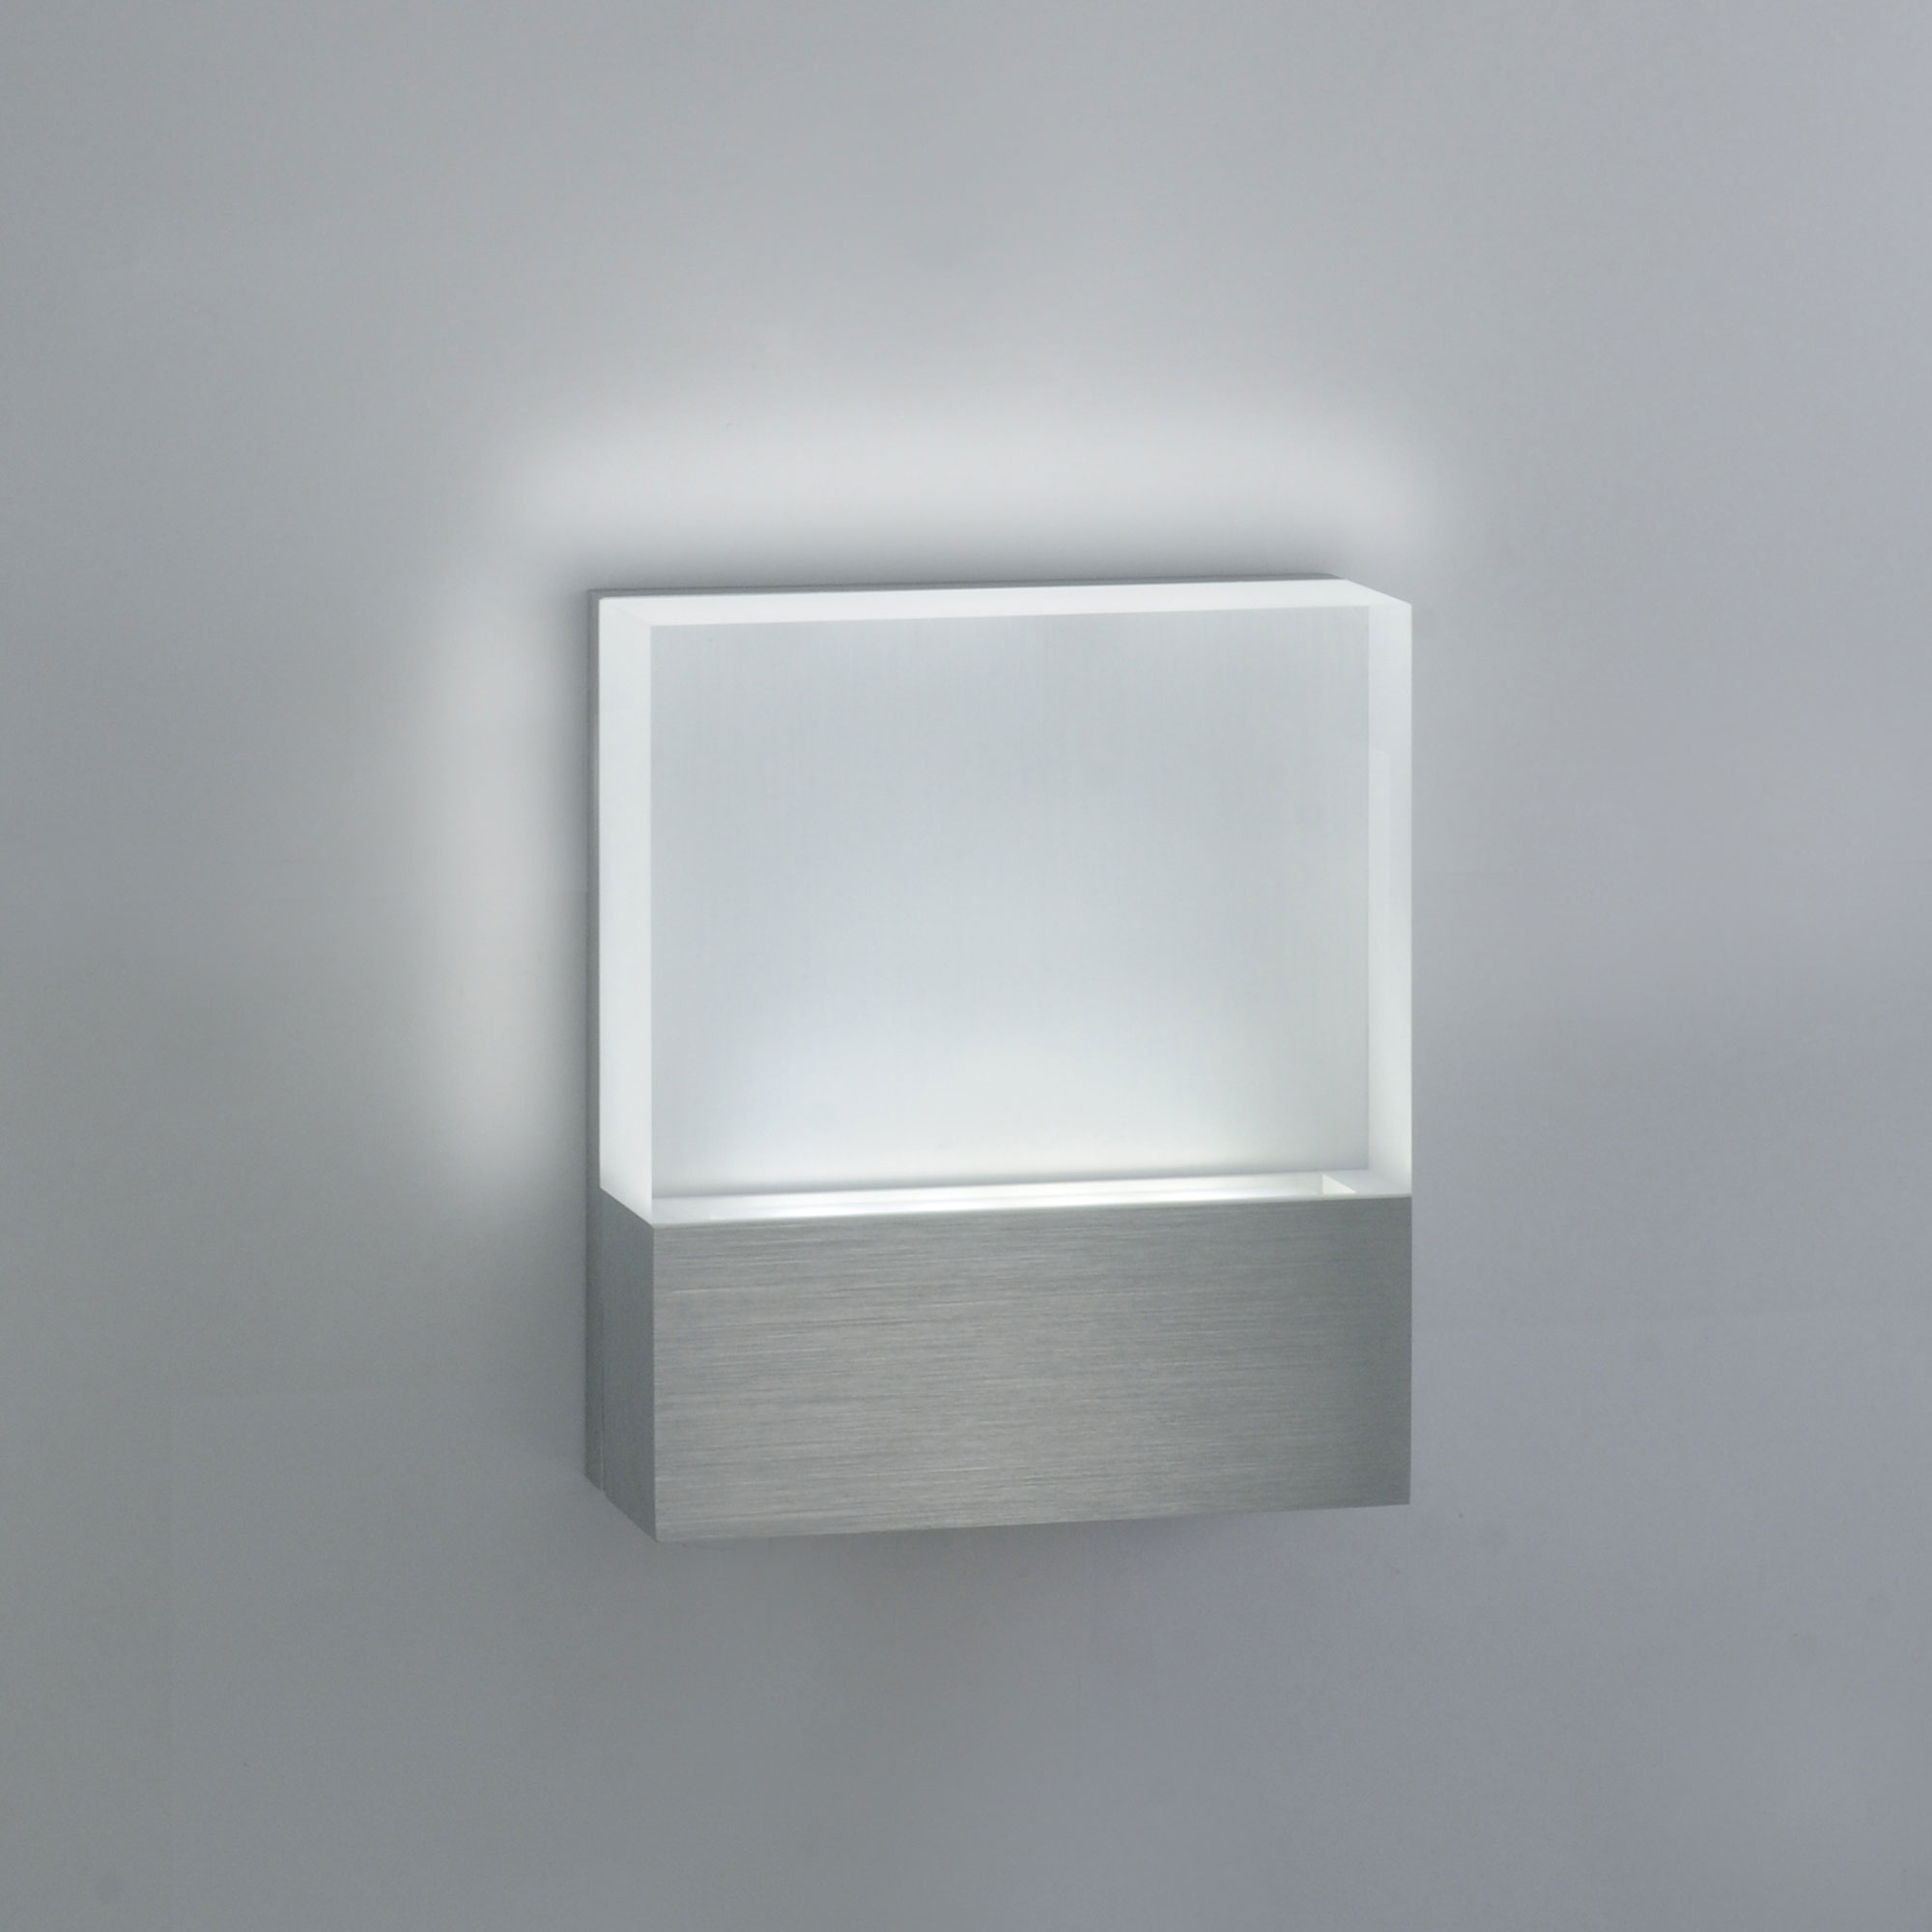 Tv Led Elv Dimmable Wall Light By